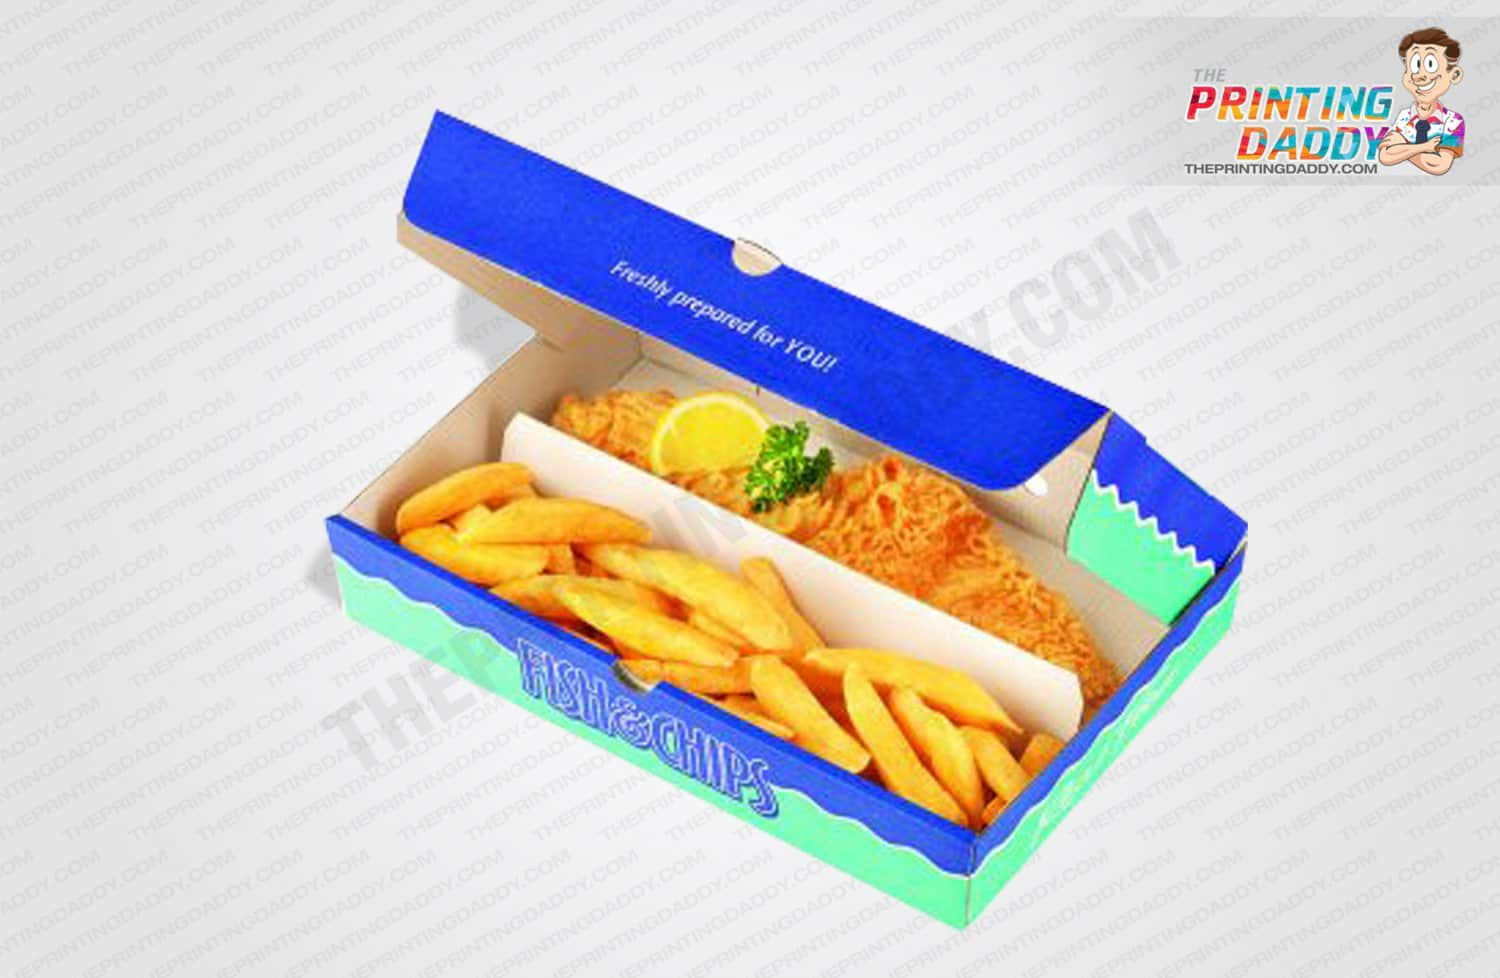 Fish & Chips Packaging Boxes The Printing Daddy